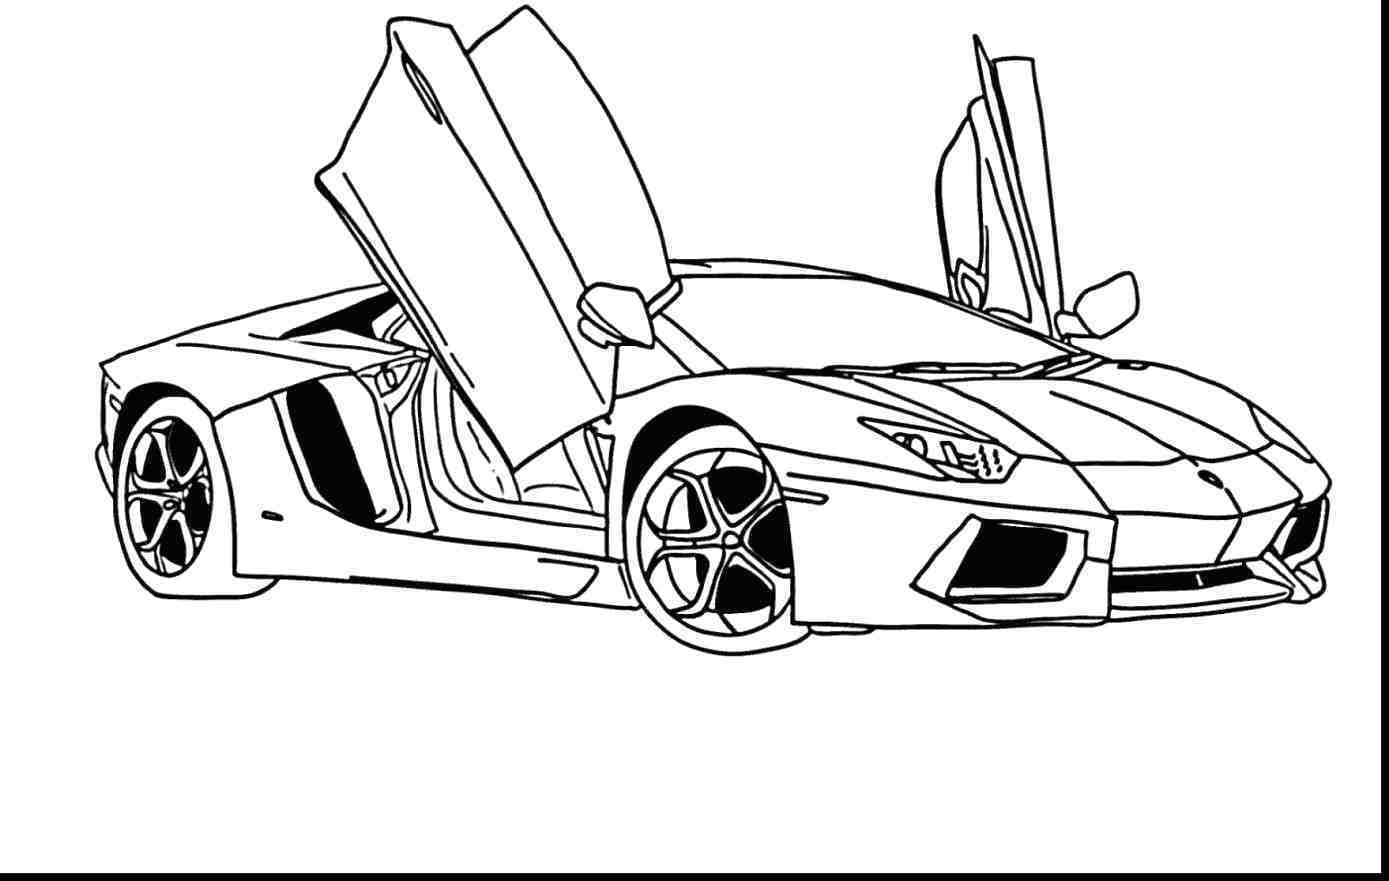 realistic lamborghini coloring pages lamborghini huracan drawing free download on clipartmag realistic lamborghini coloring pages